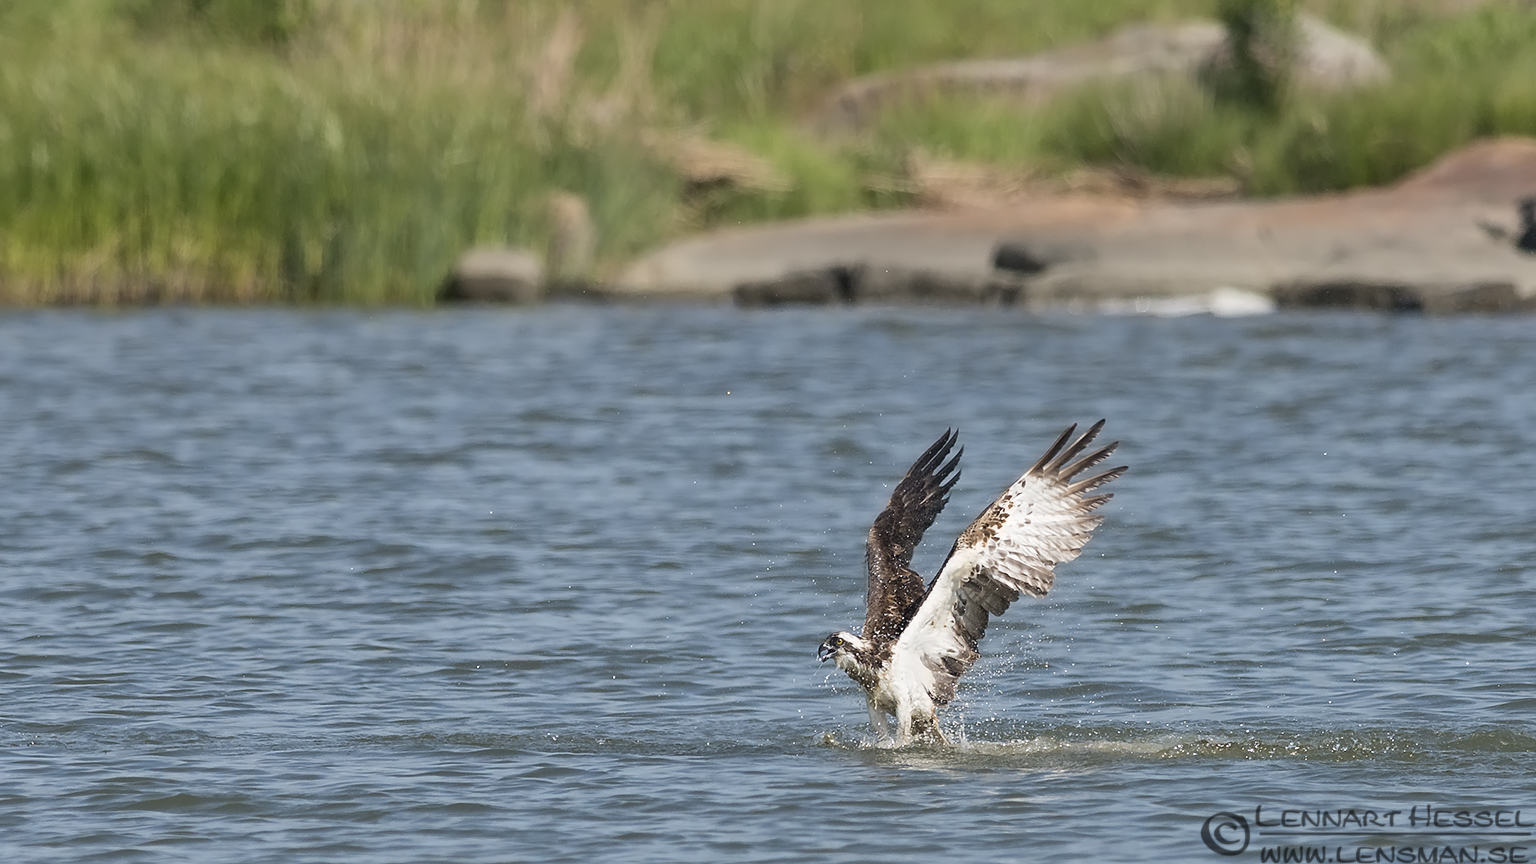 Osprey coming out of the water catch